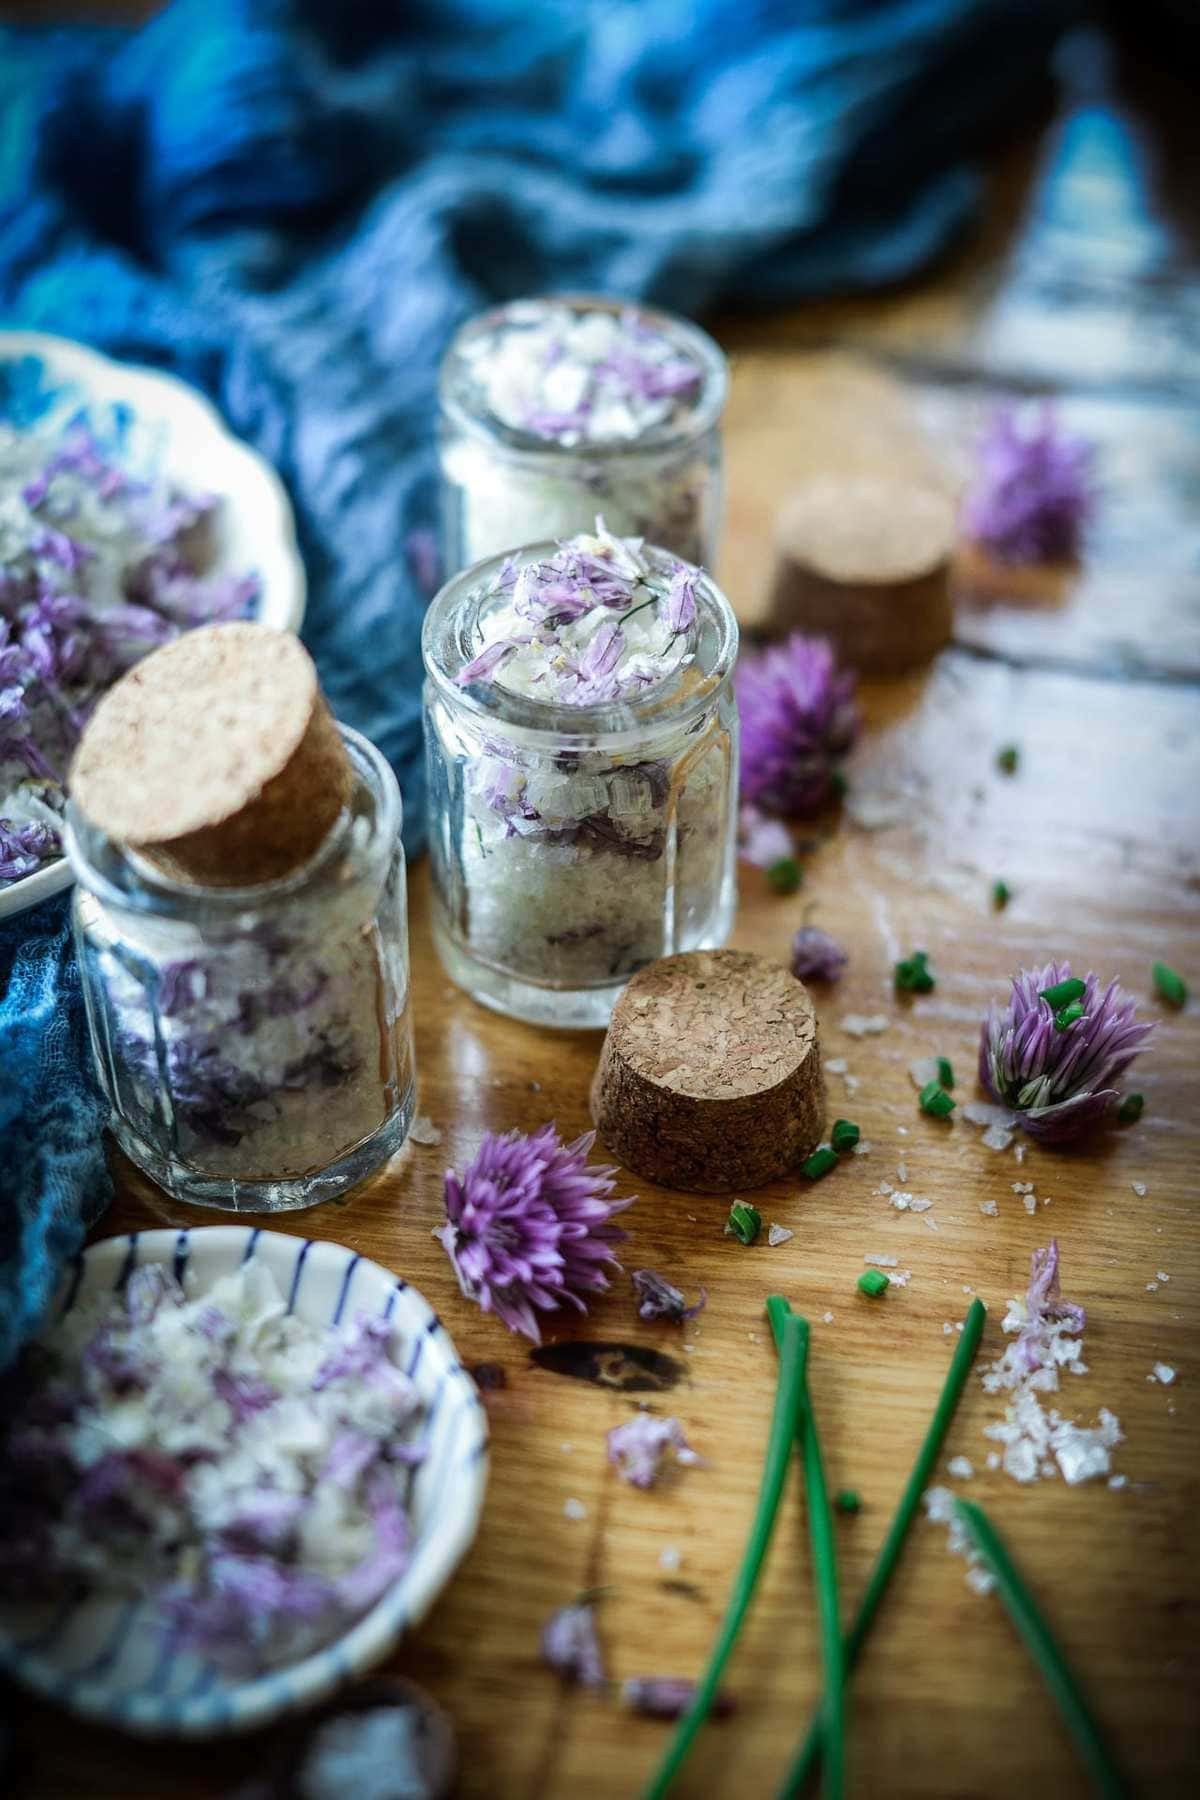 Fare Isle | 3 Vegan-Friendly Recipes To Use Chive Blossoms